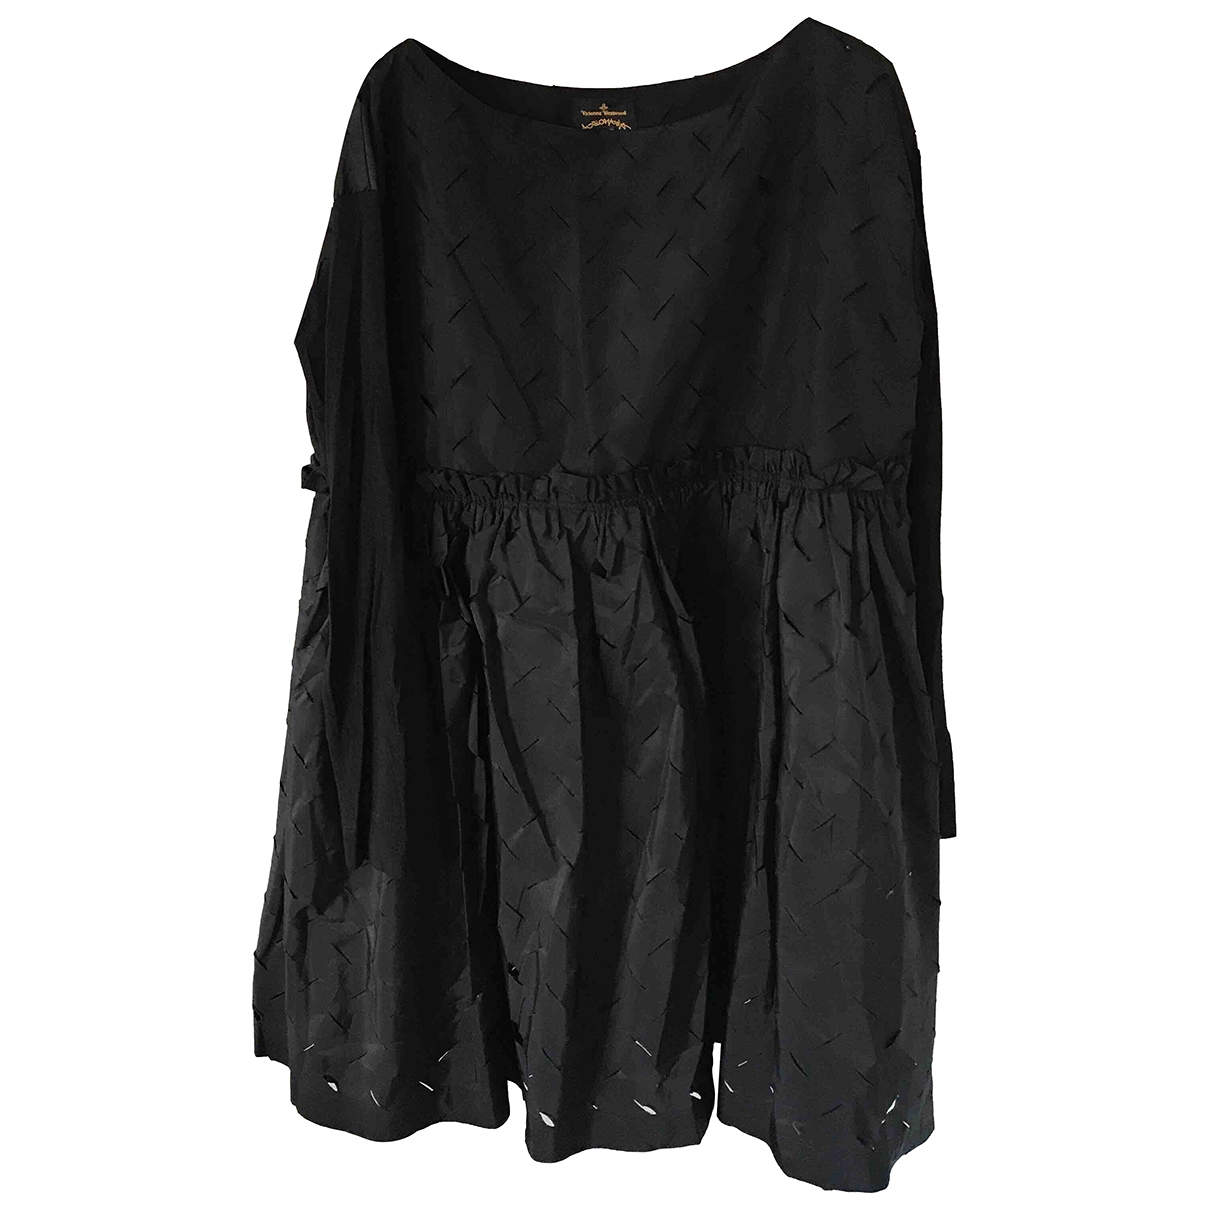 Vivienne Westwood Anglomania \N Black dress for Women 42 IT